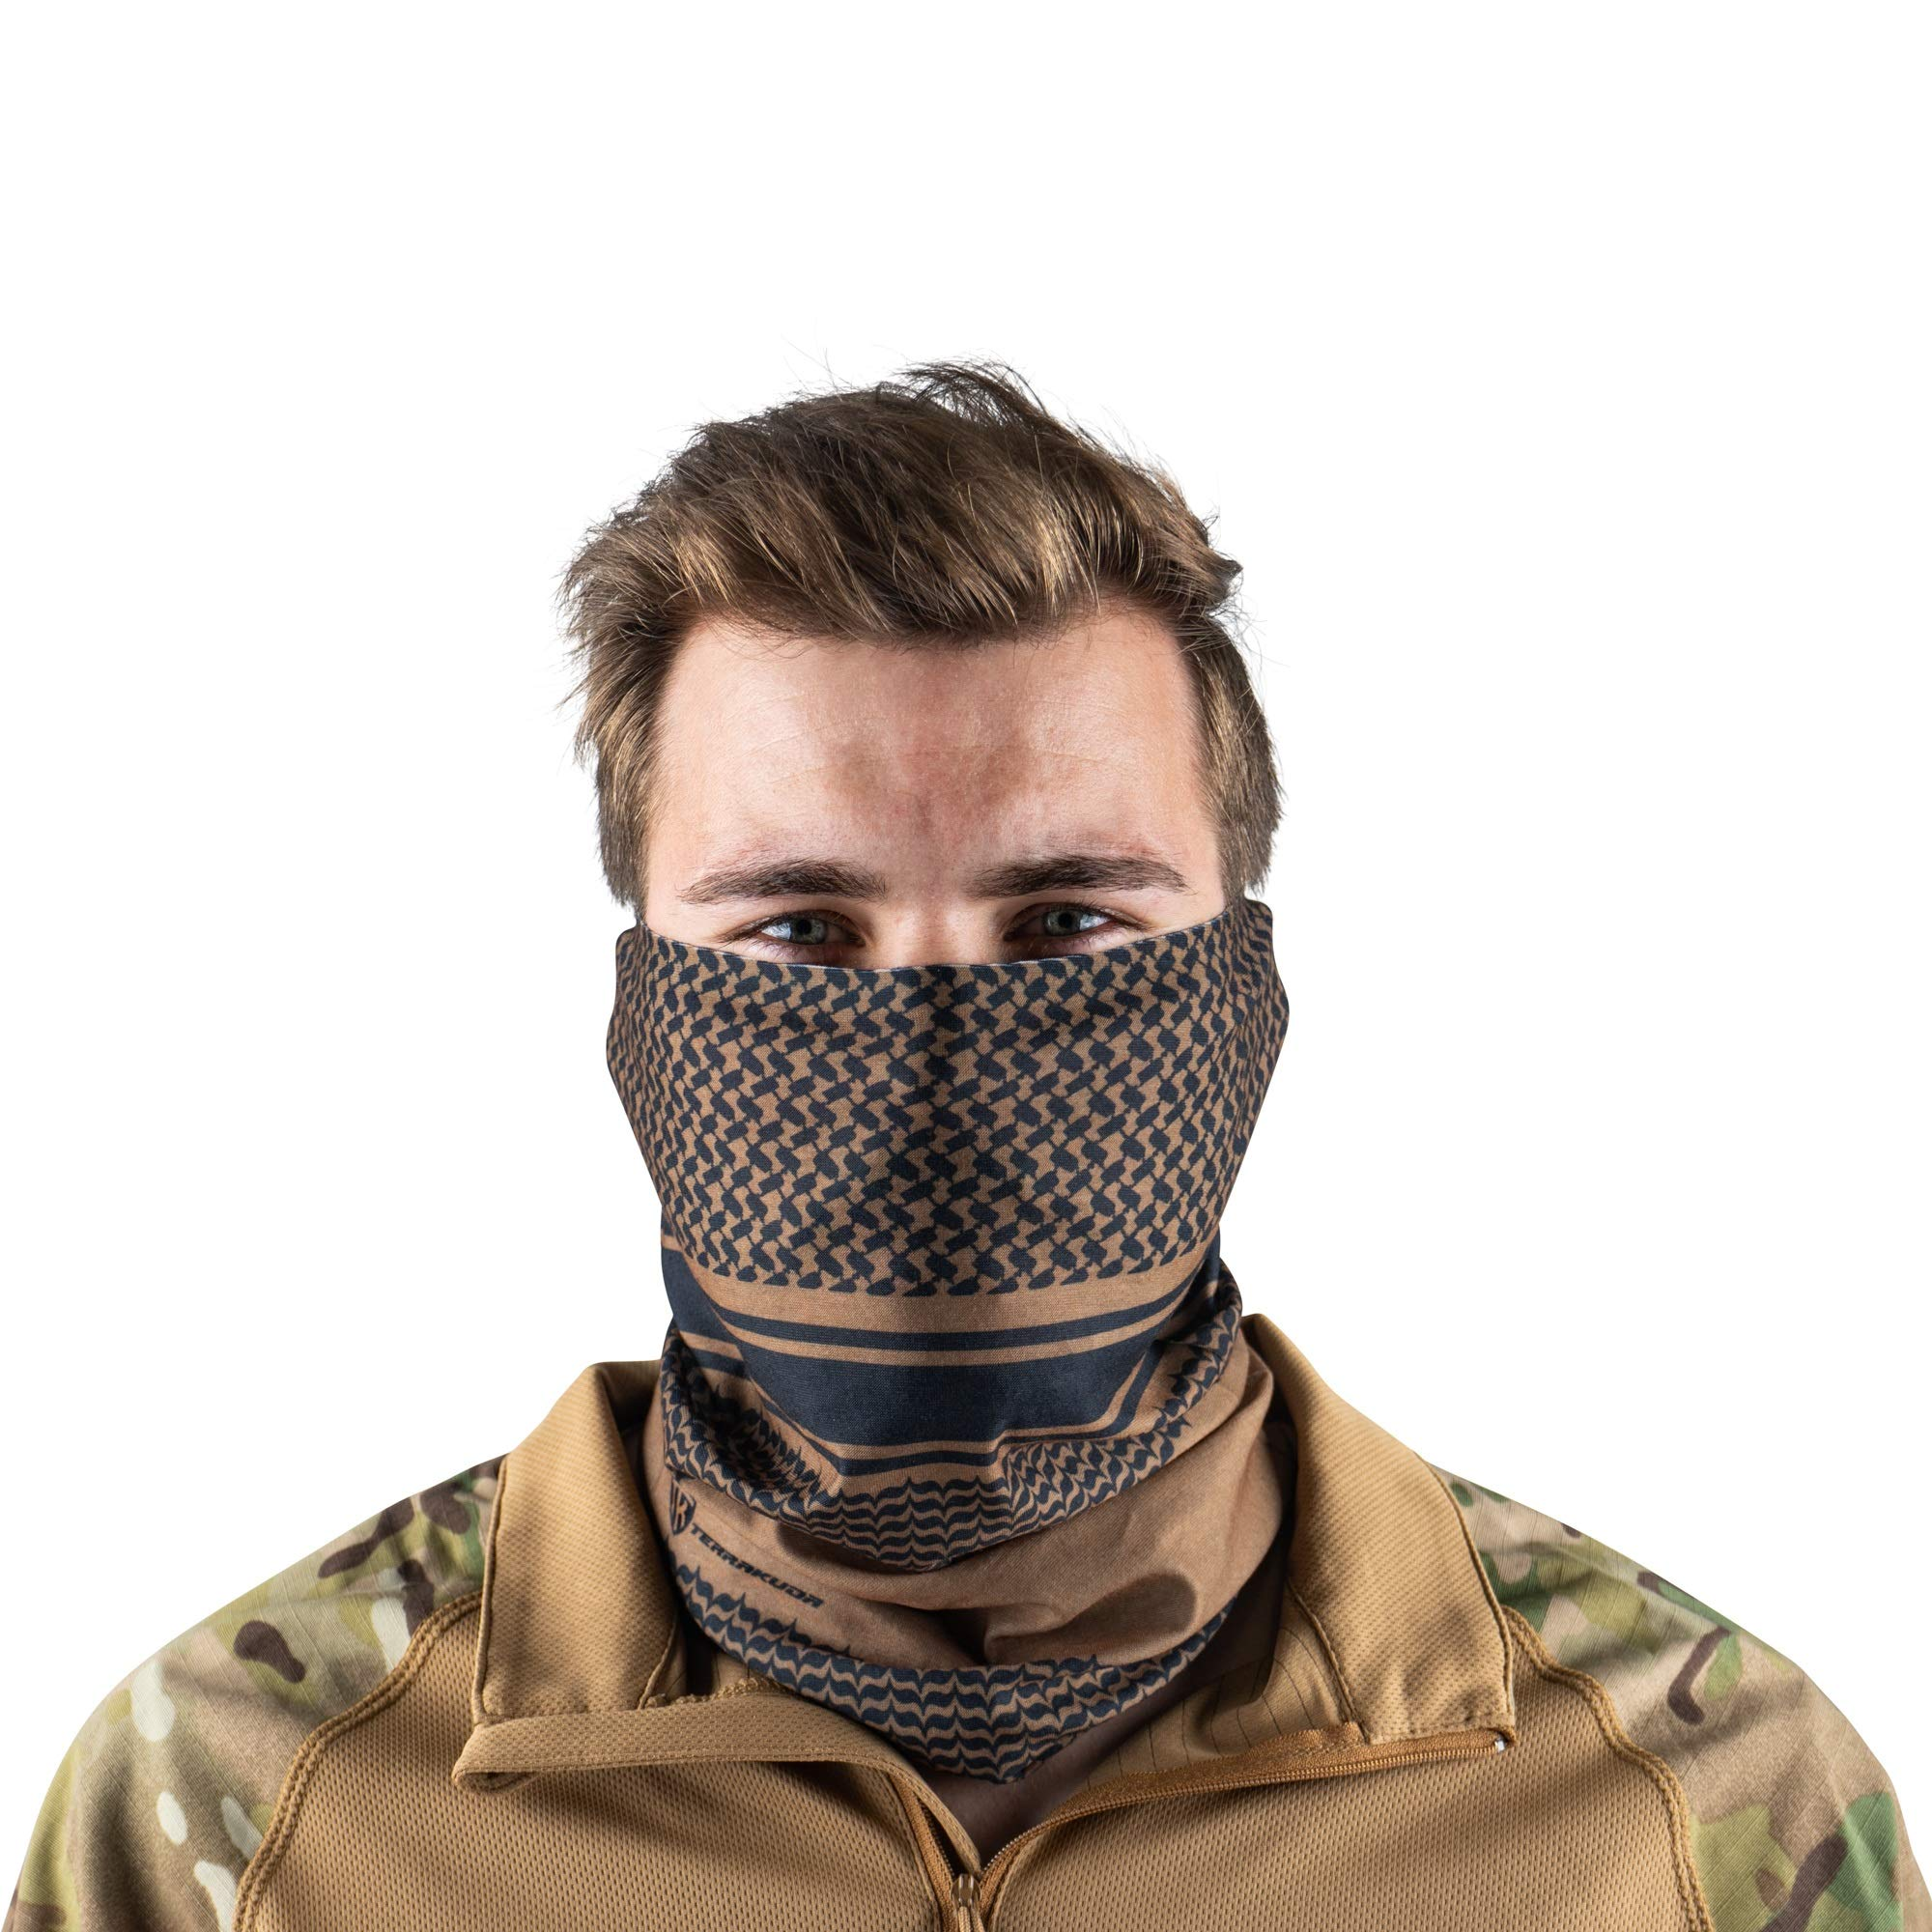 Terra Kuda Face Clothing Neck Gaiter Mask - Non Slip Light Breathable for Sun Wind Dust Bandana Balaclava (Coyote Shemagh) by Terra Kuda